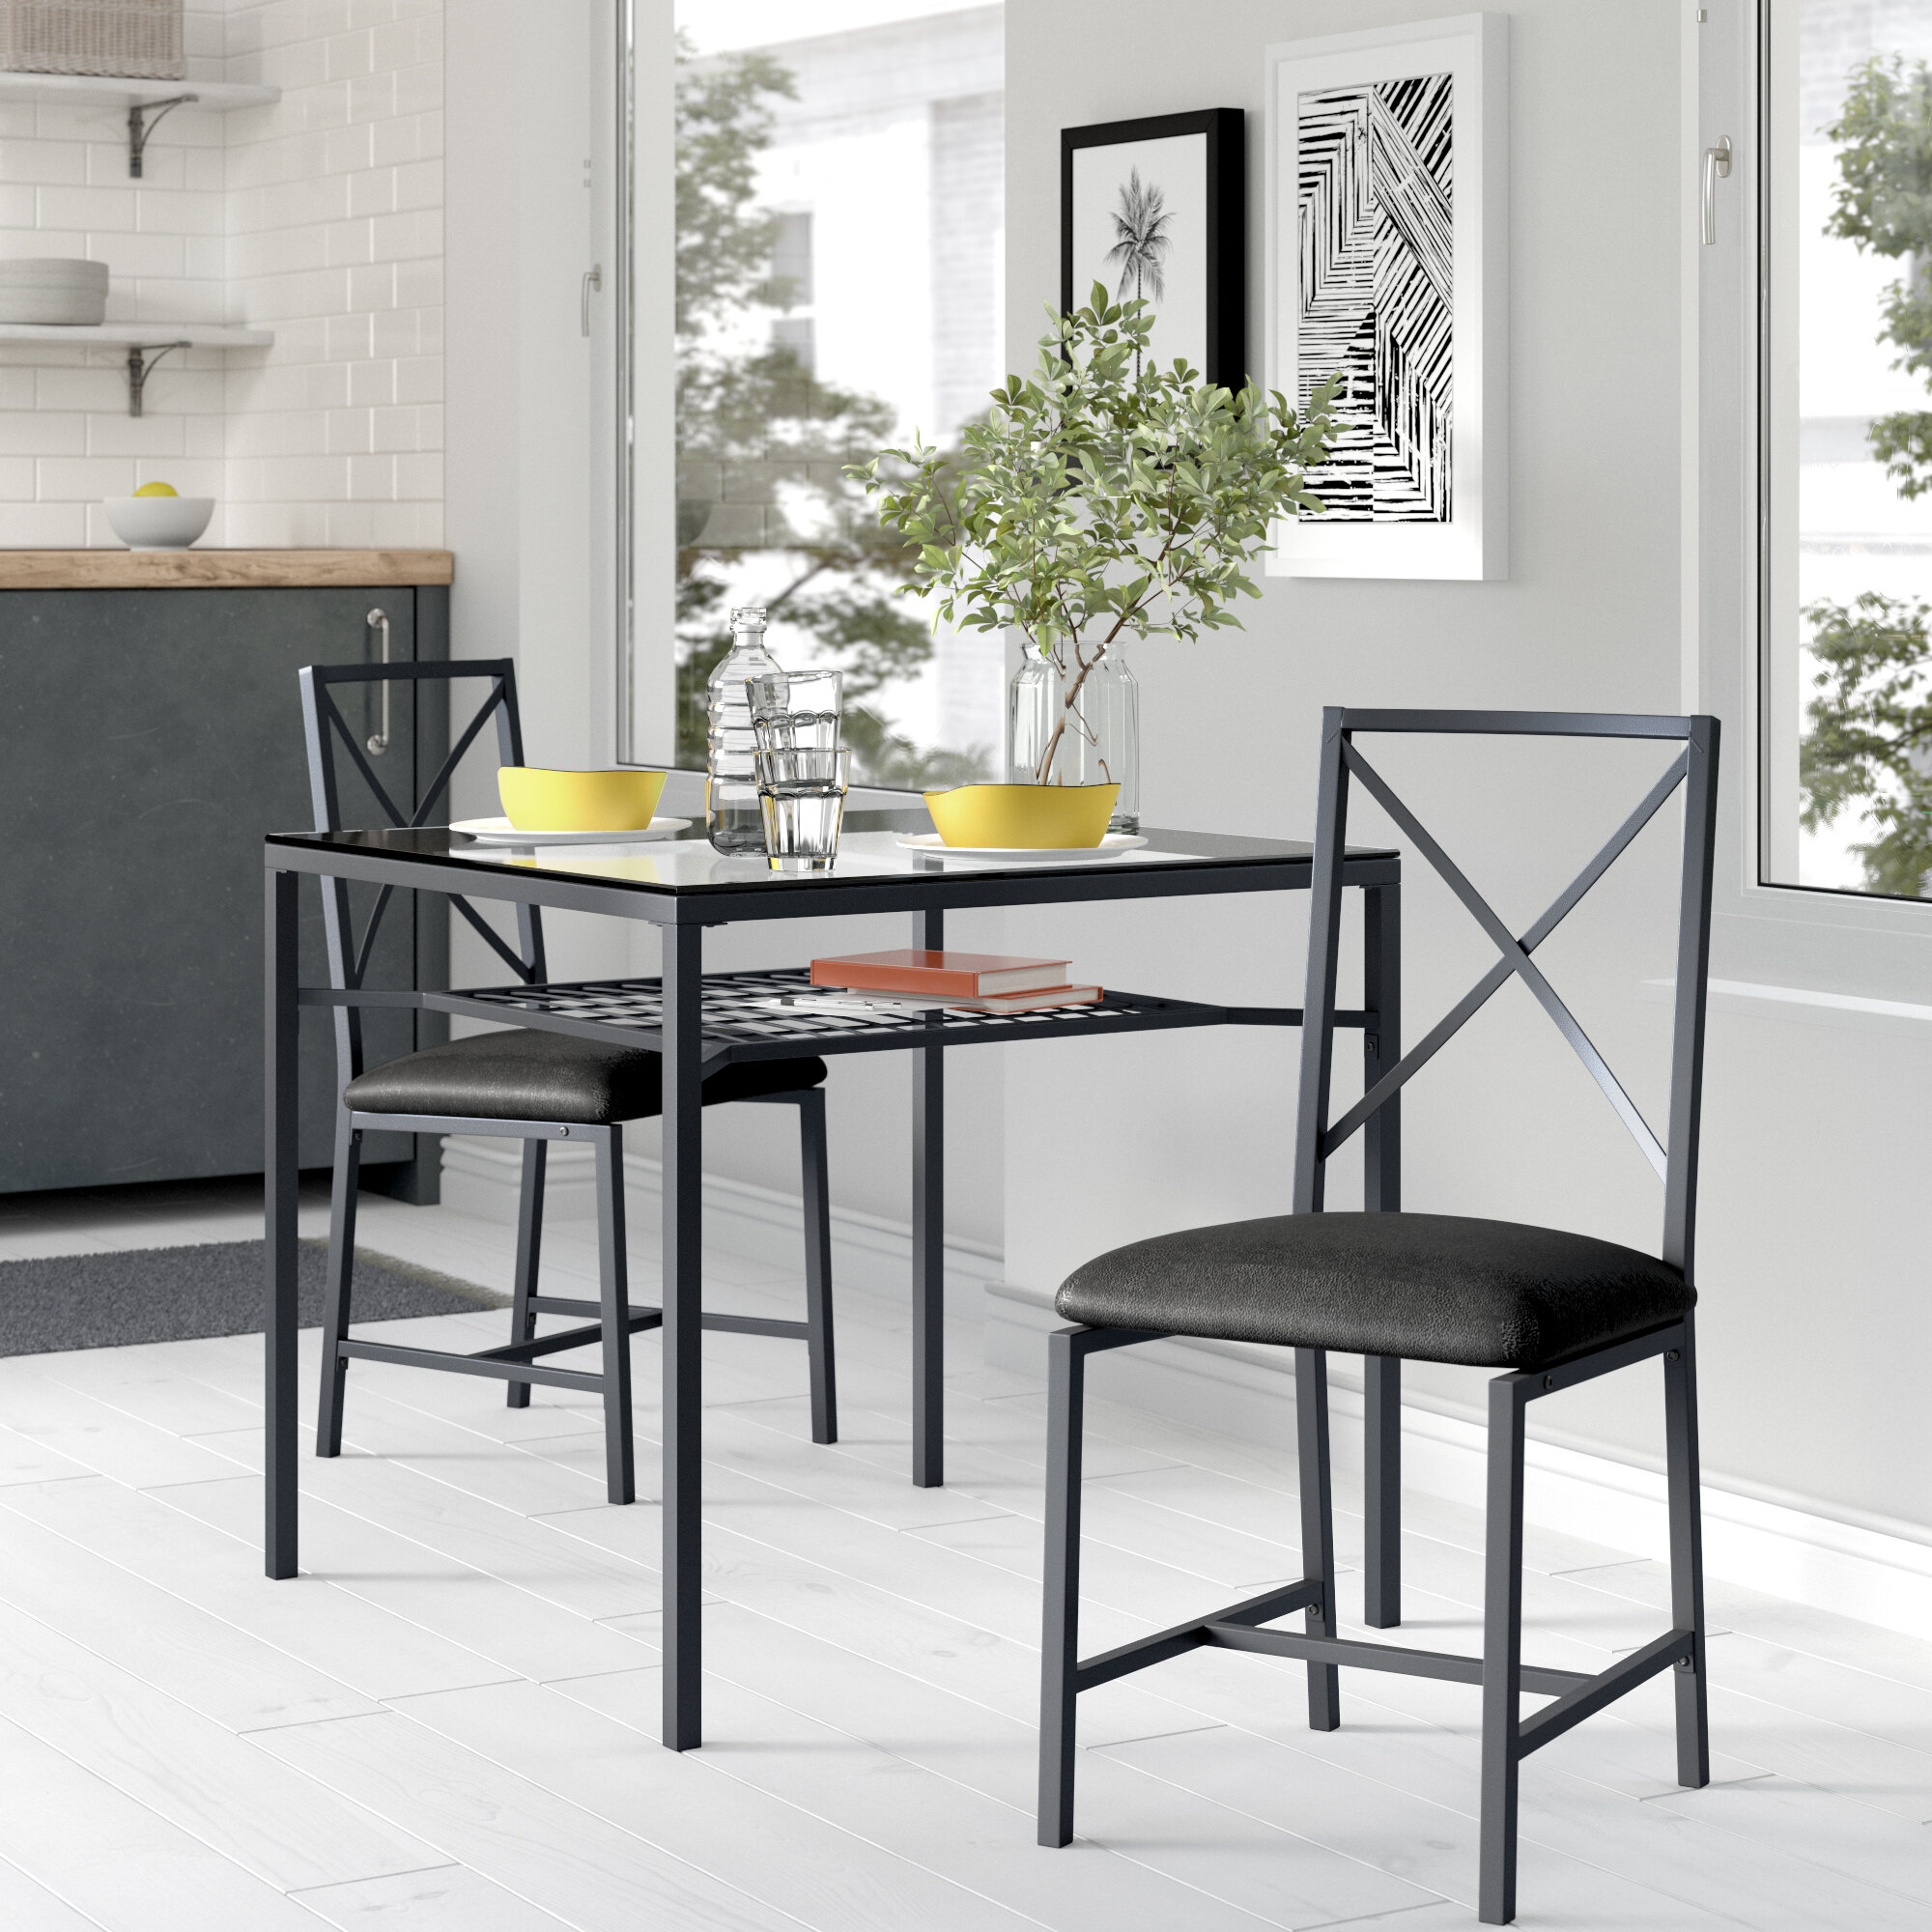 Berryhill 3 Piece Dining Set For 2018 Baillie 3 Piece Dining Sets (Image 2 of 20)